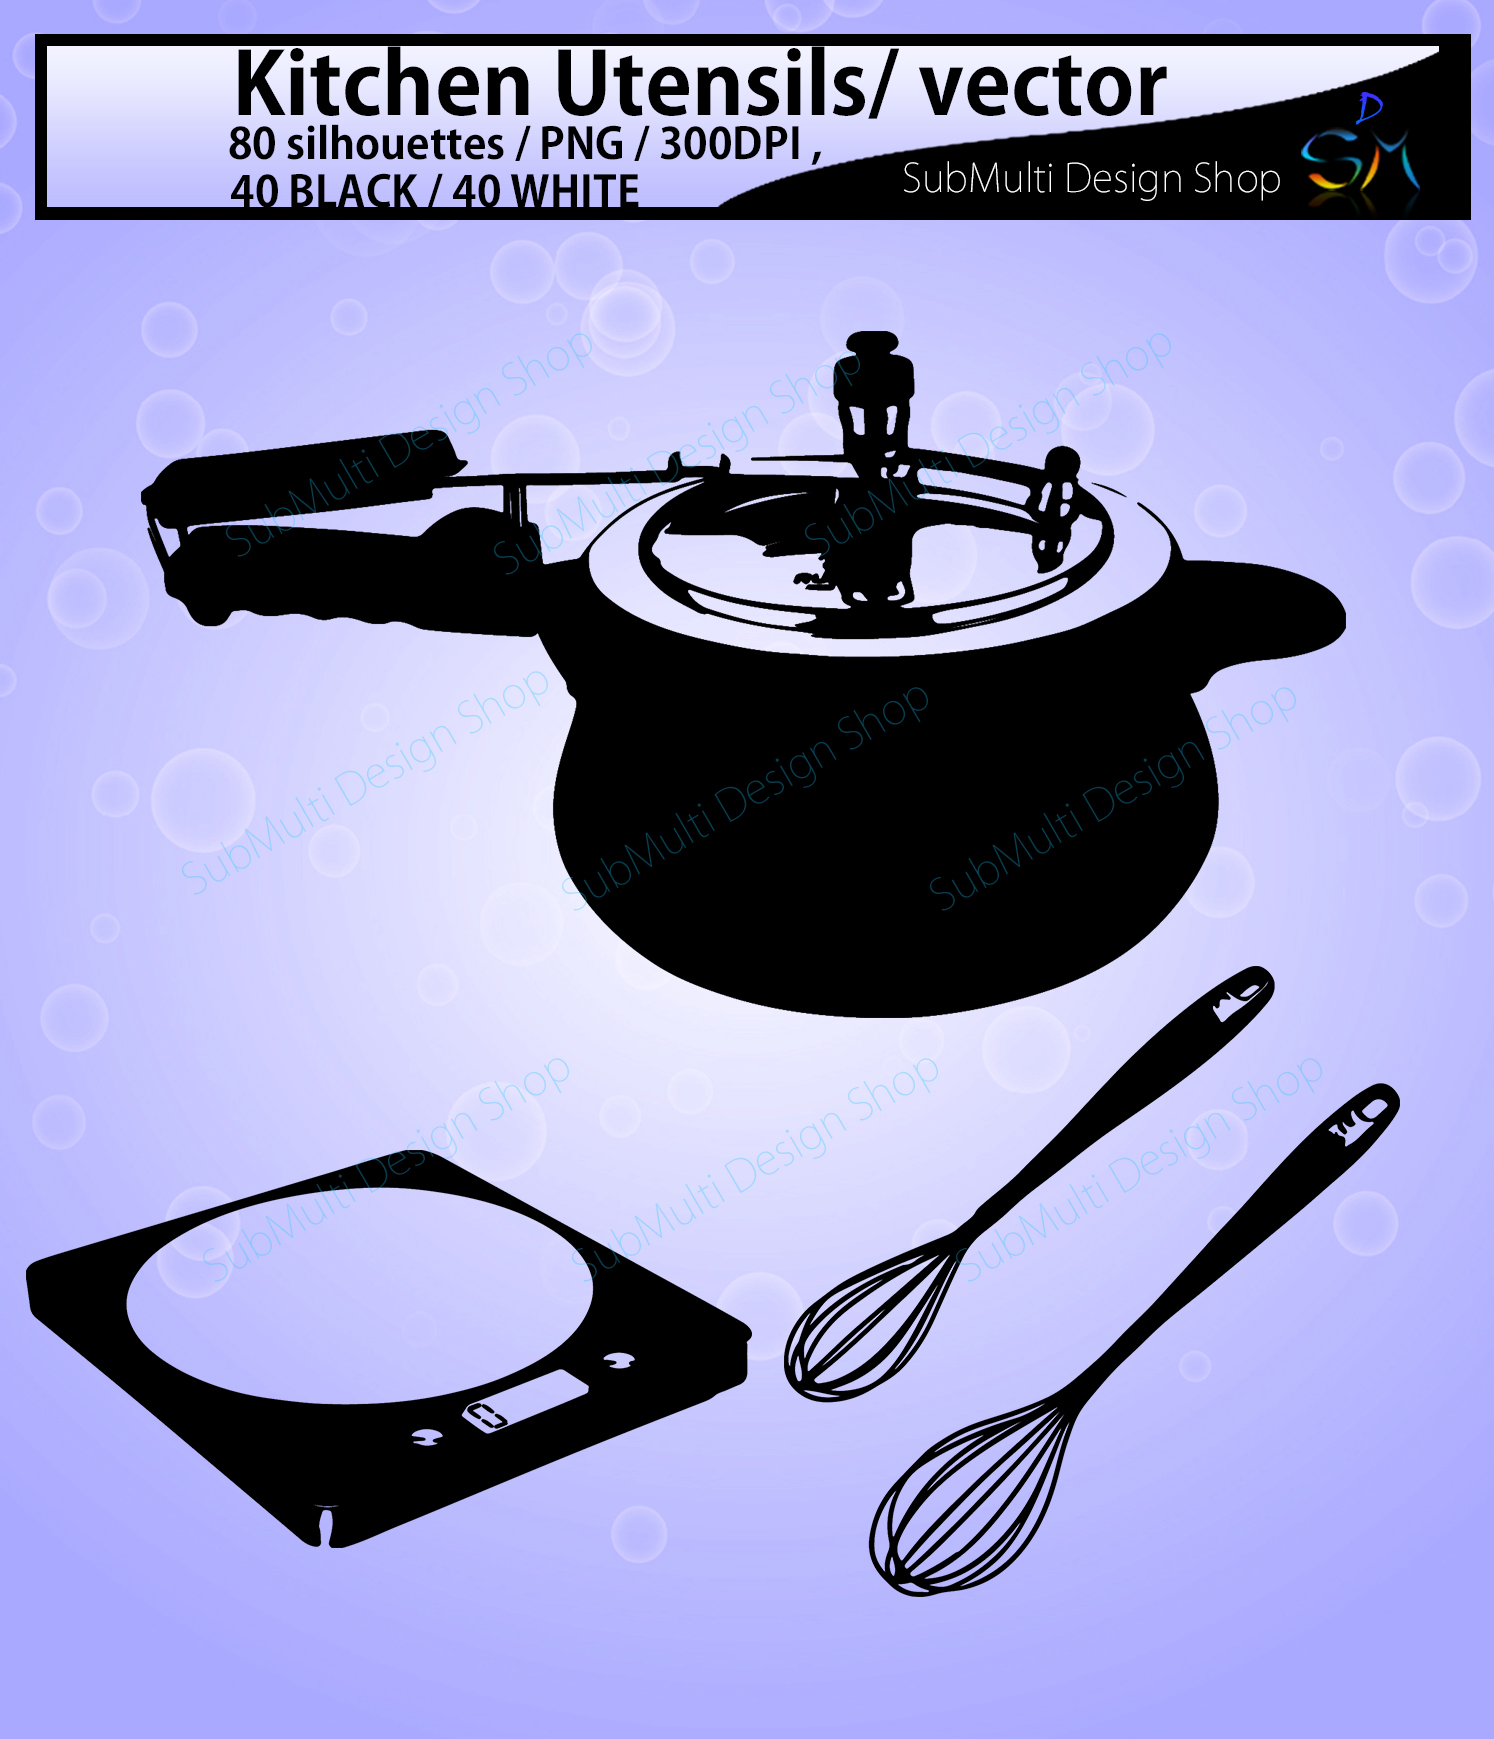 Kitchen Utensils silhouette svg / Kitchen Utensils clipart / Kitchen Utensil for scrapbook and card making /vector / EPS / PNG / craft files example image 4